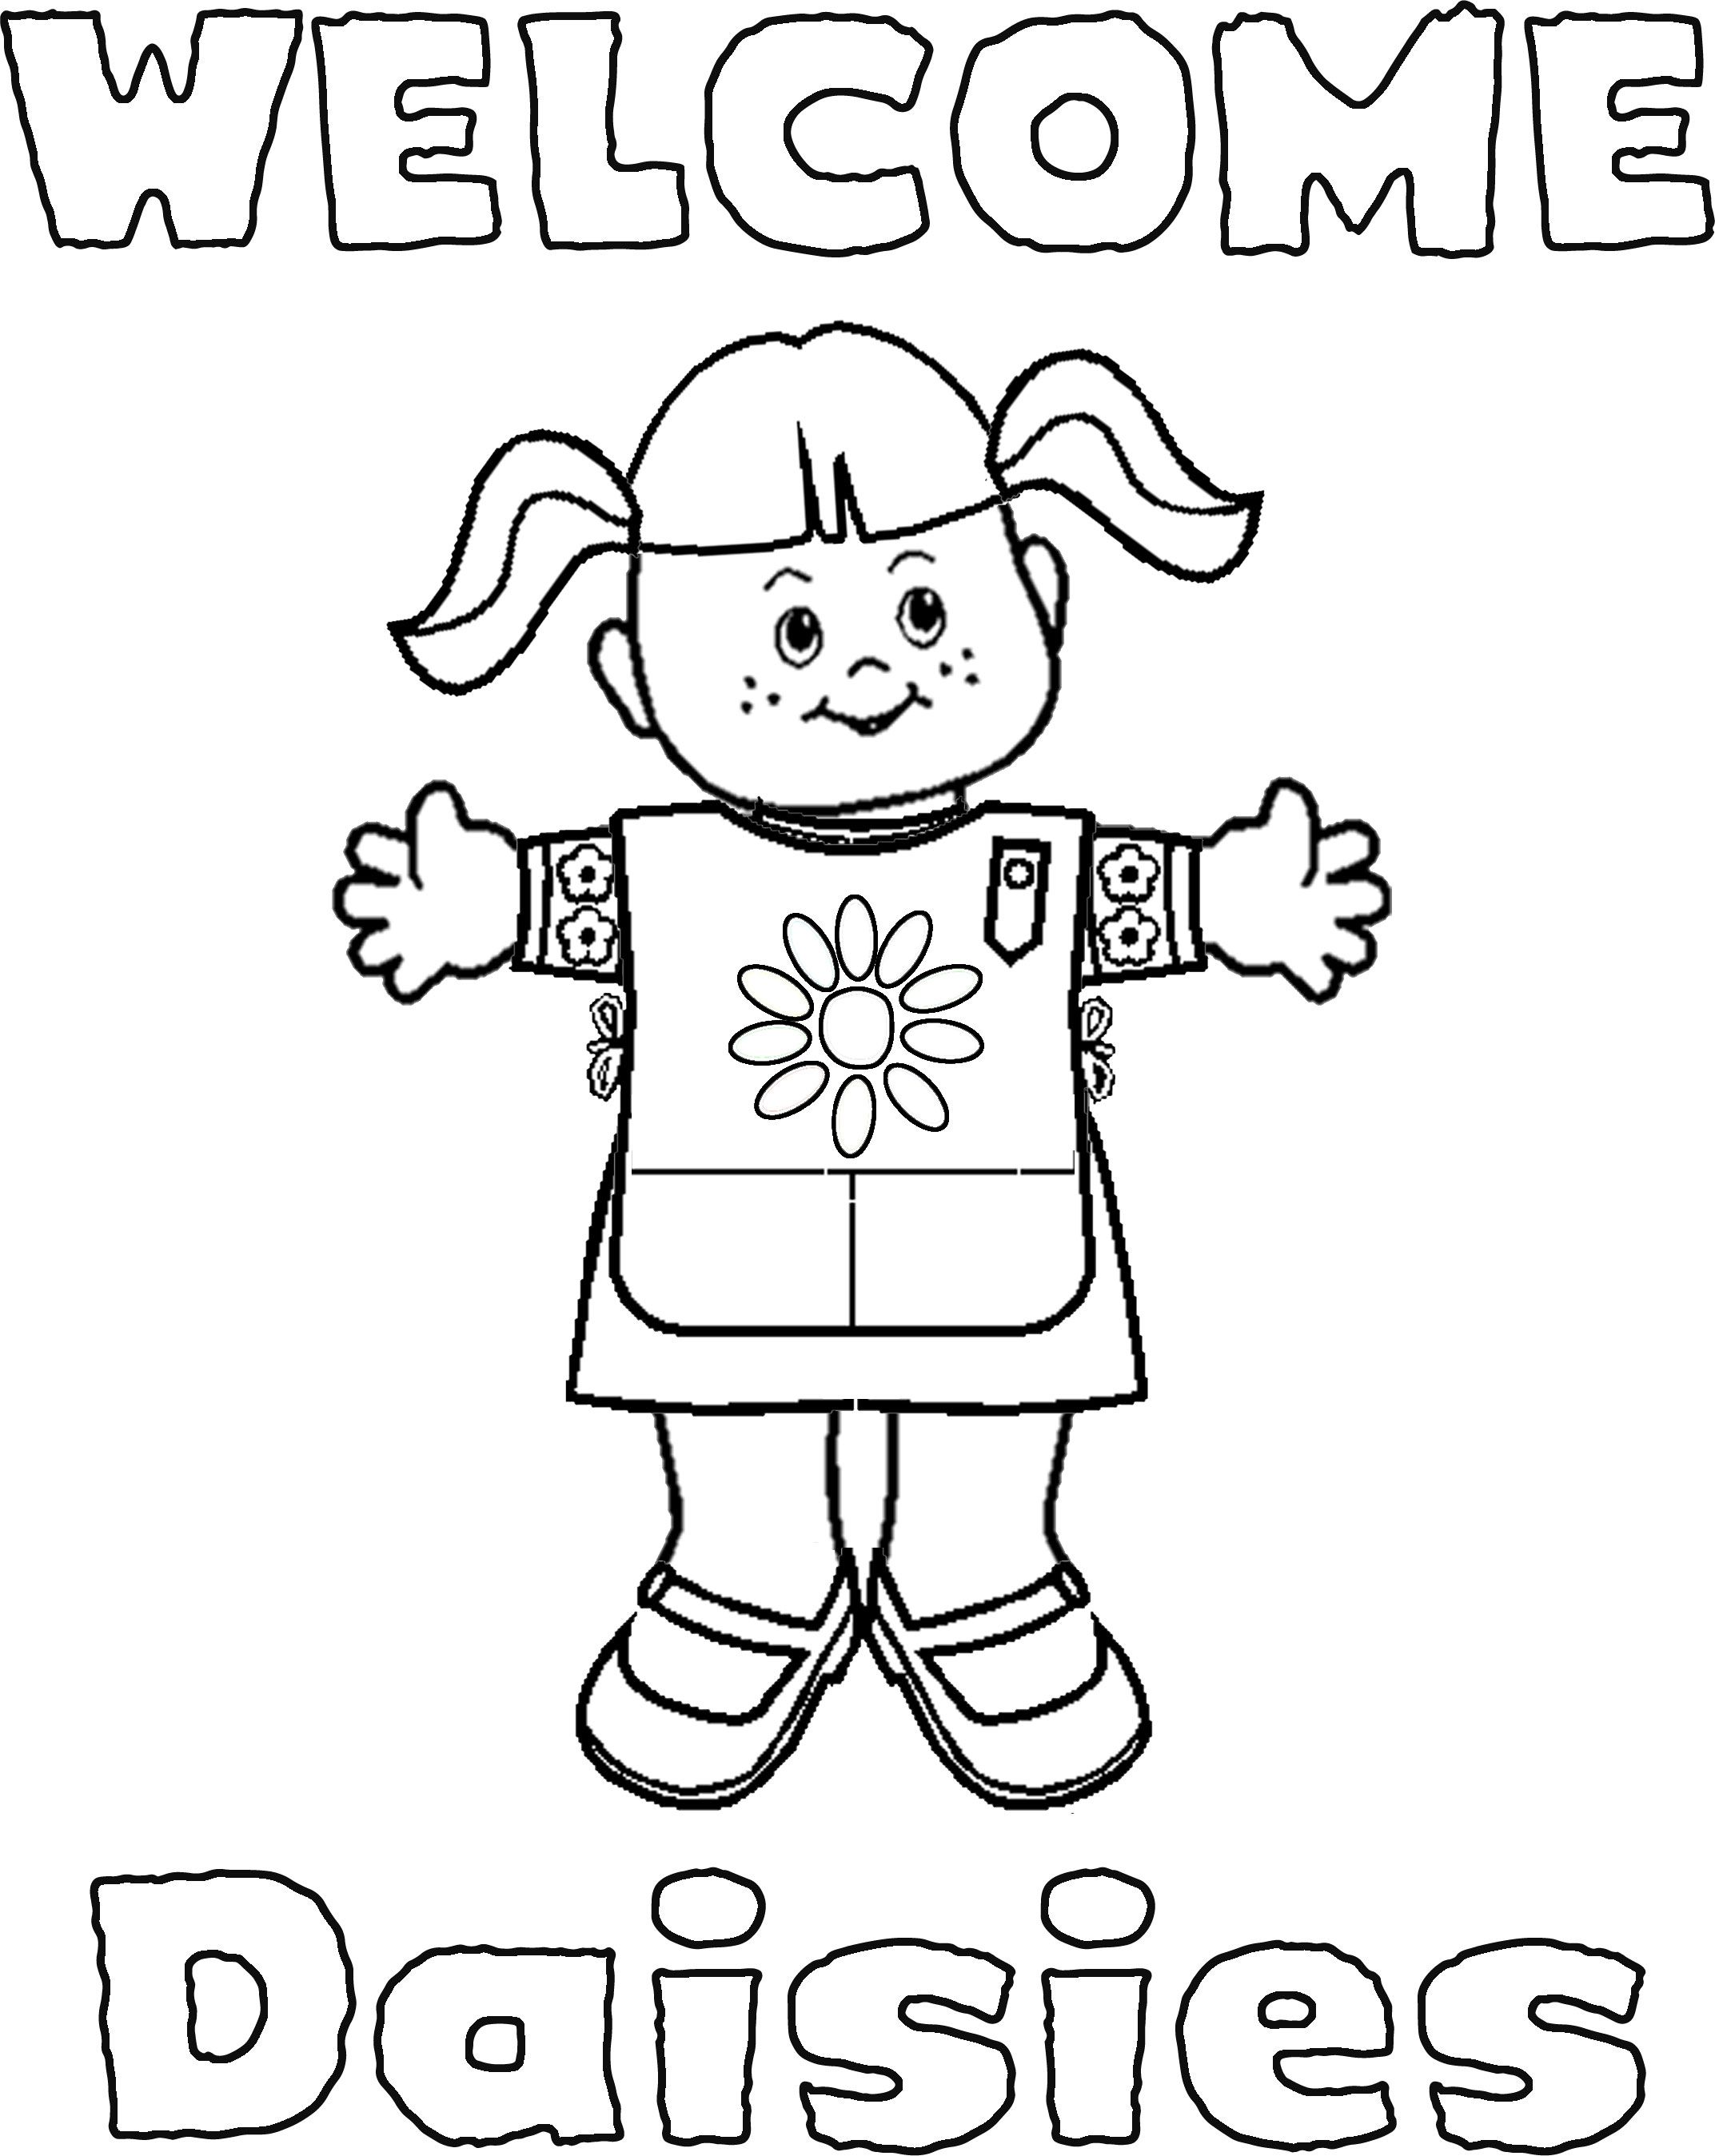 Daisy Girl Scout Coloring Pages Daisy Girl Scouts Daisy Scout Junior Coloring Pages Free